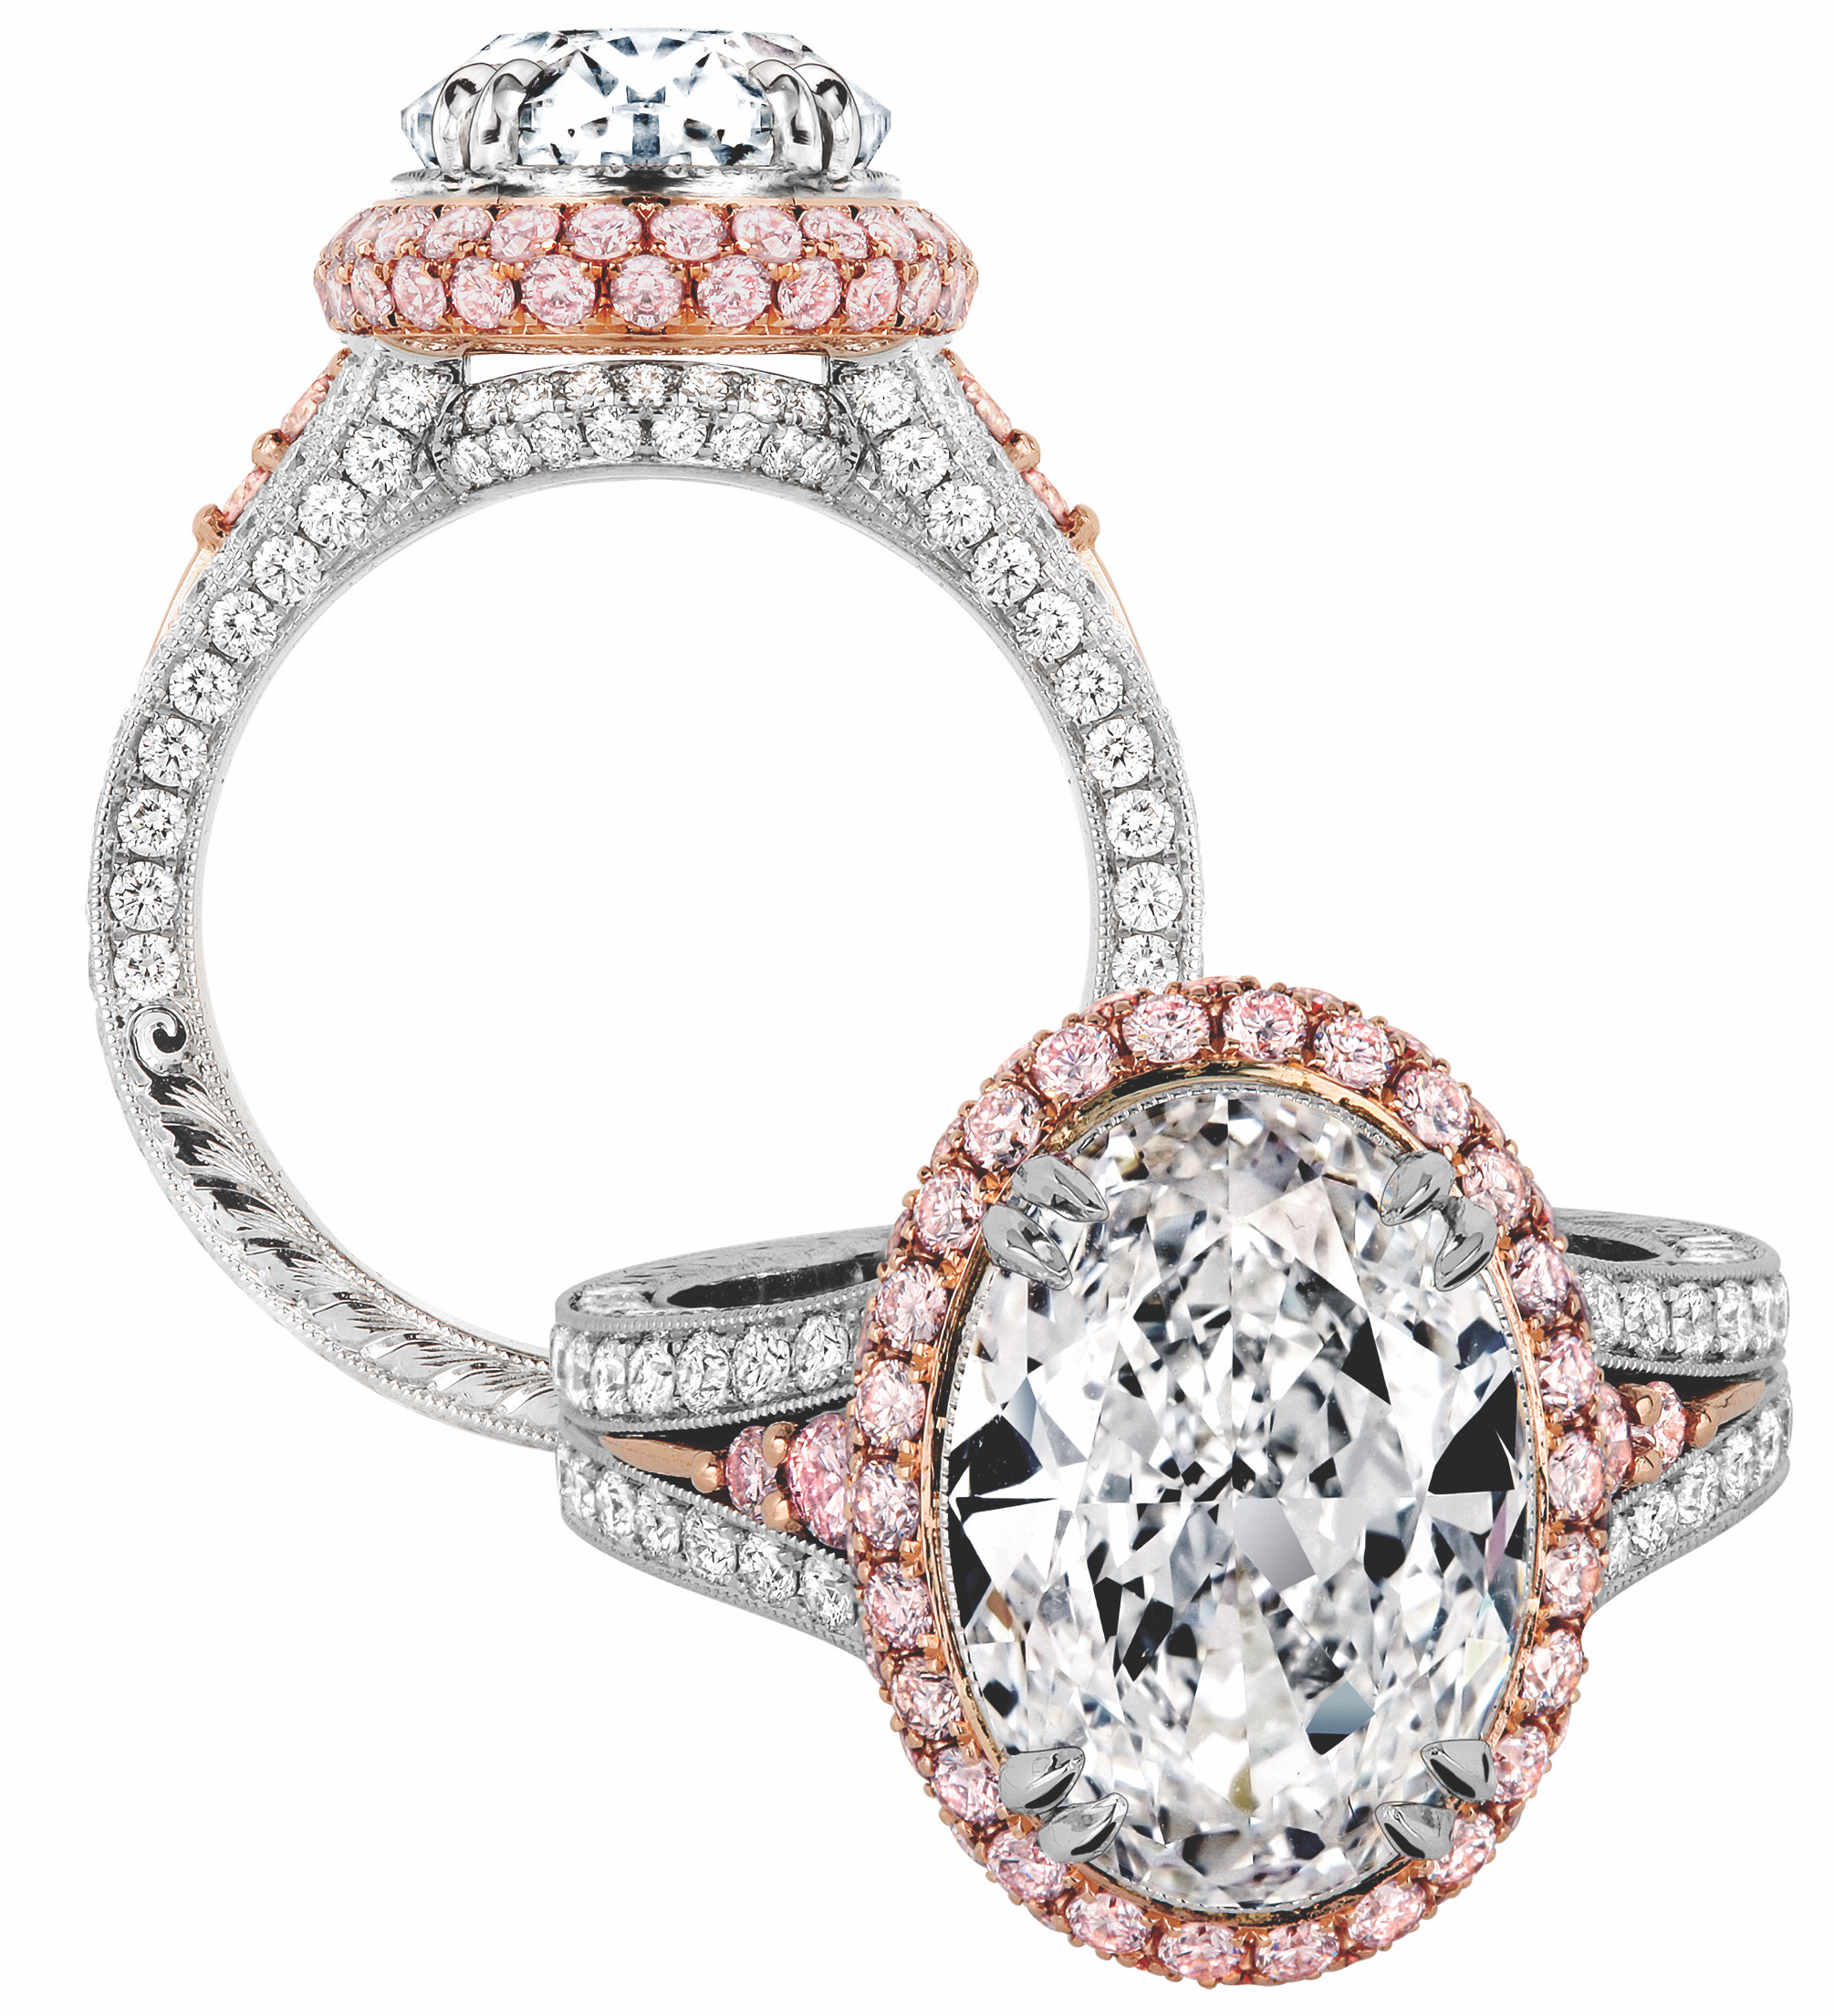 Jack Kelege oval diamond engagement ring with pink | JCK On Your Market